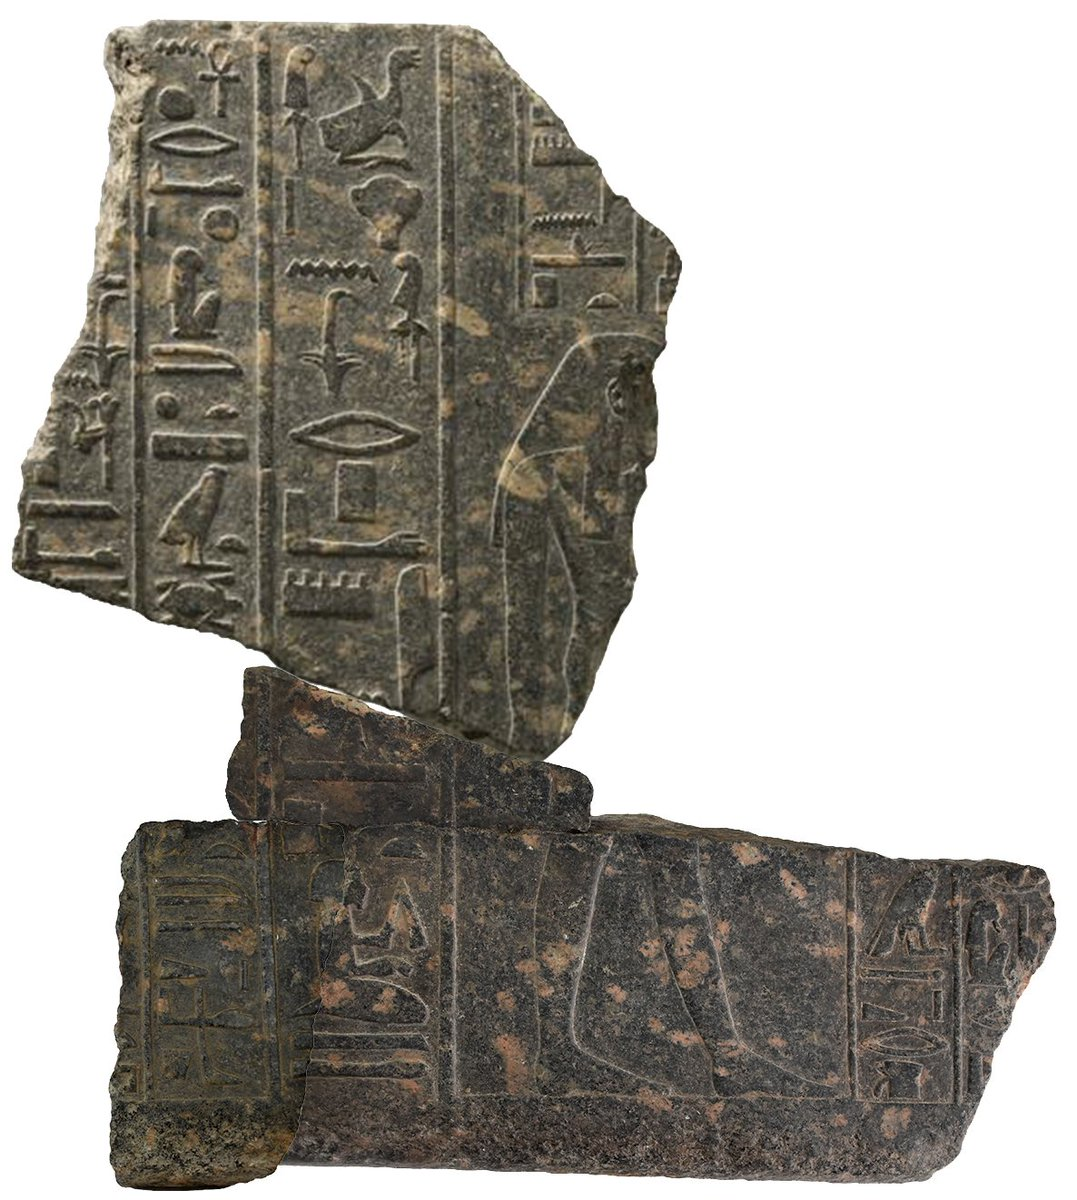 Thank you to Aidan Dodson for the wonderful lecture on Amenhotep son of Hapu tonight, which included this new reconstruction of fragments from @TheEgyptCentre, @World_Museum, and @ArtHistoryBRU. If you missed it, you can watch it here: https://t.co/FD5Yqdqgdu https://t.co/Bh1DJ7xugP